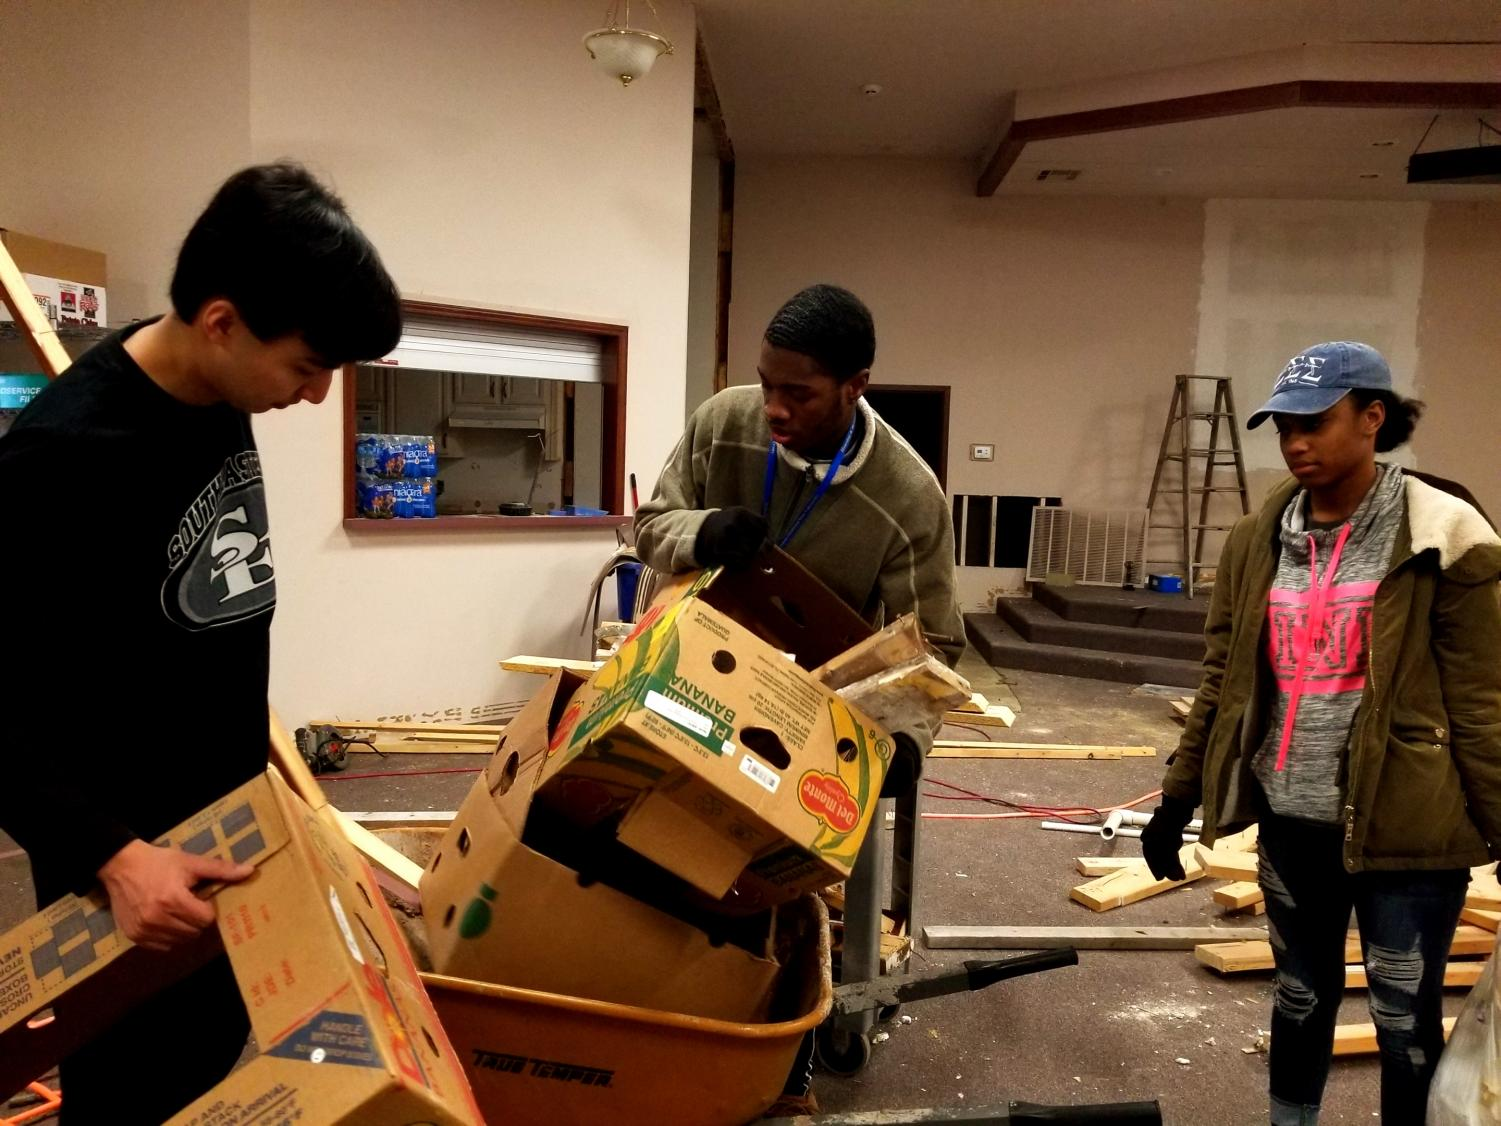 Dylan Candelora, Tay Pruitt and Jay Carr help remove trash from the J127 building on Jan. 21, 2019. Though volunteer activities may be different this year, their impact is not lessened.